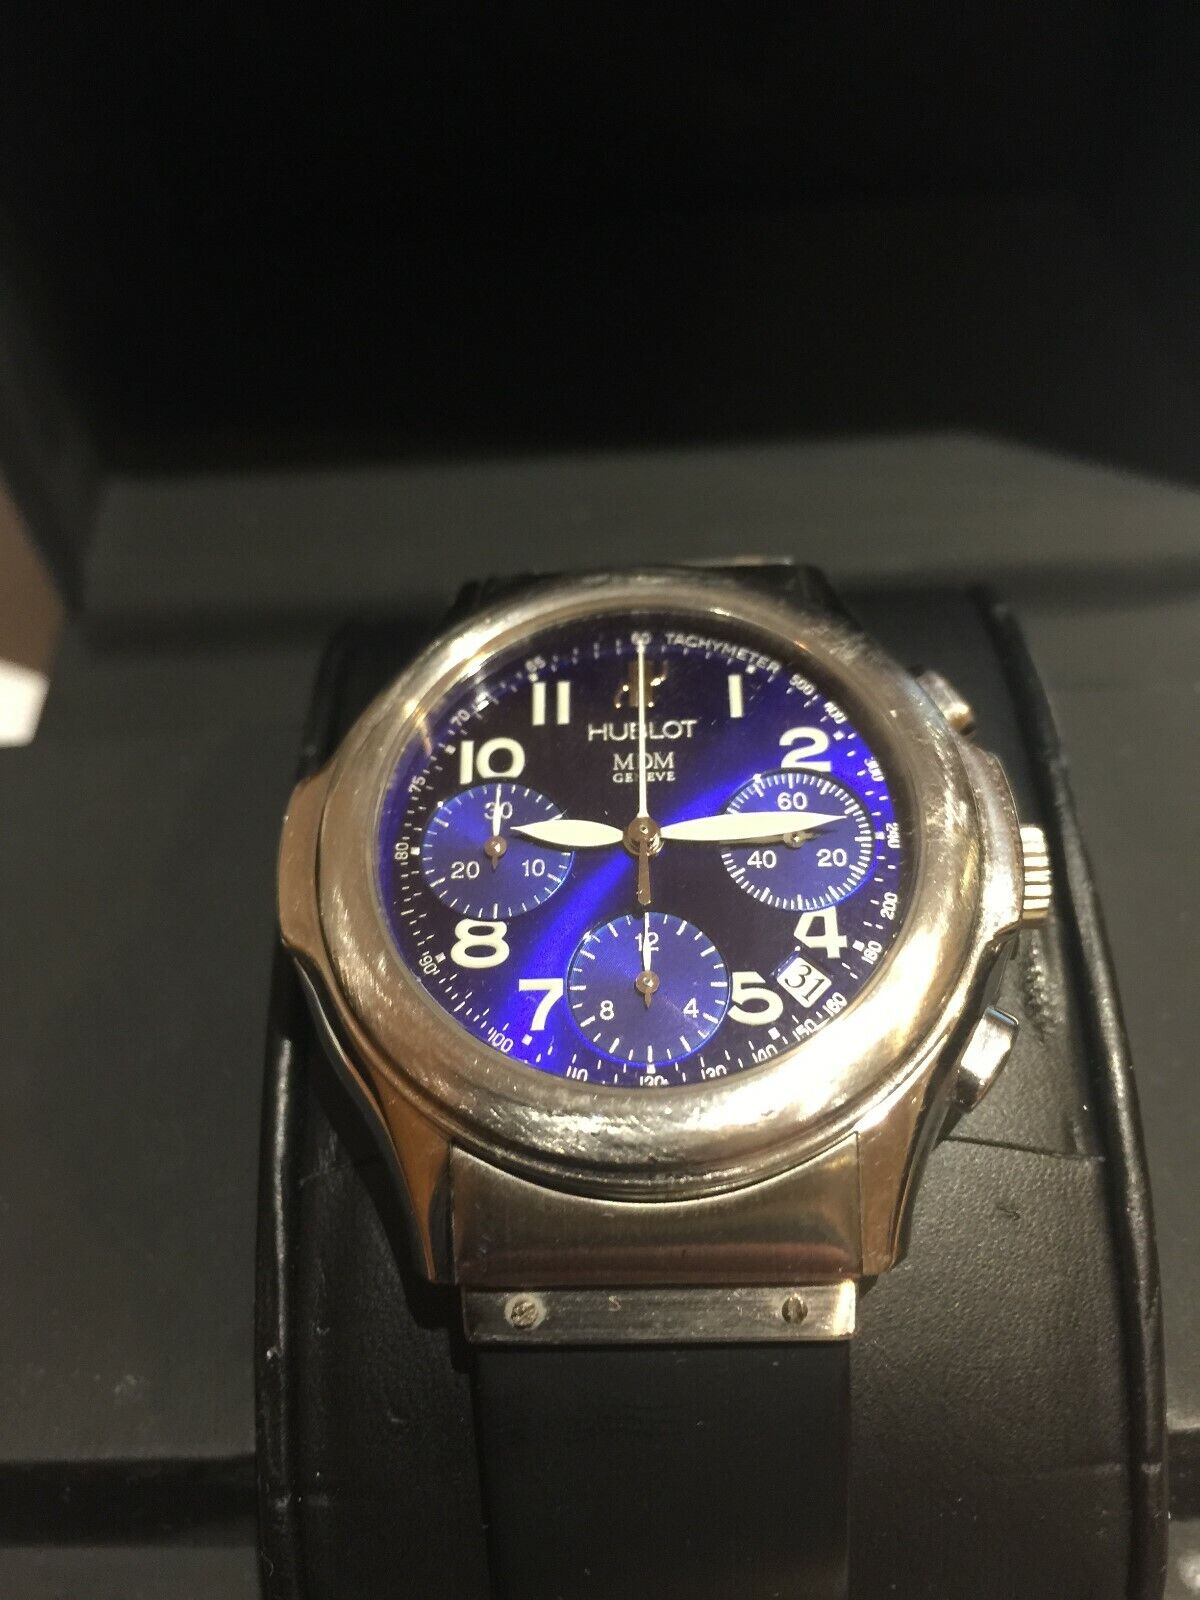 Hublot MDM Geneve Chronograph Stainless Automatic Mens Watch 1810.2 Boxes papers - watch picture 1